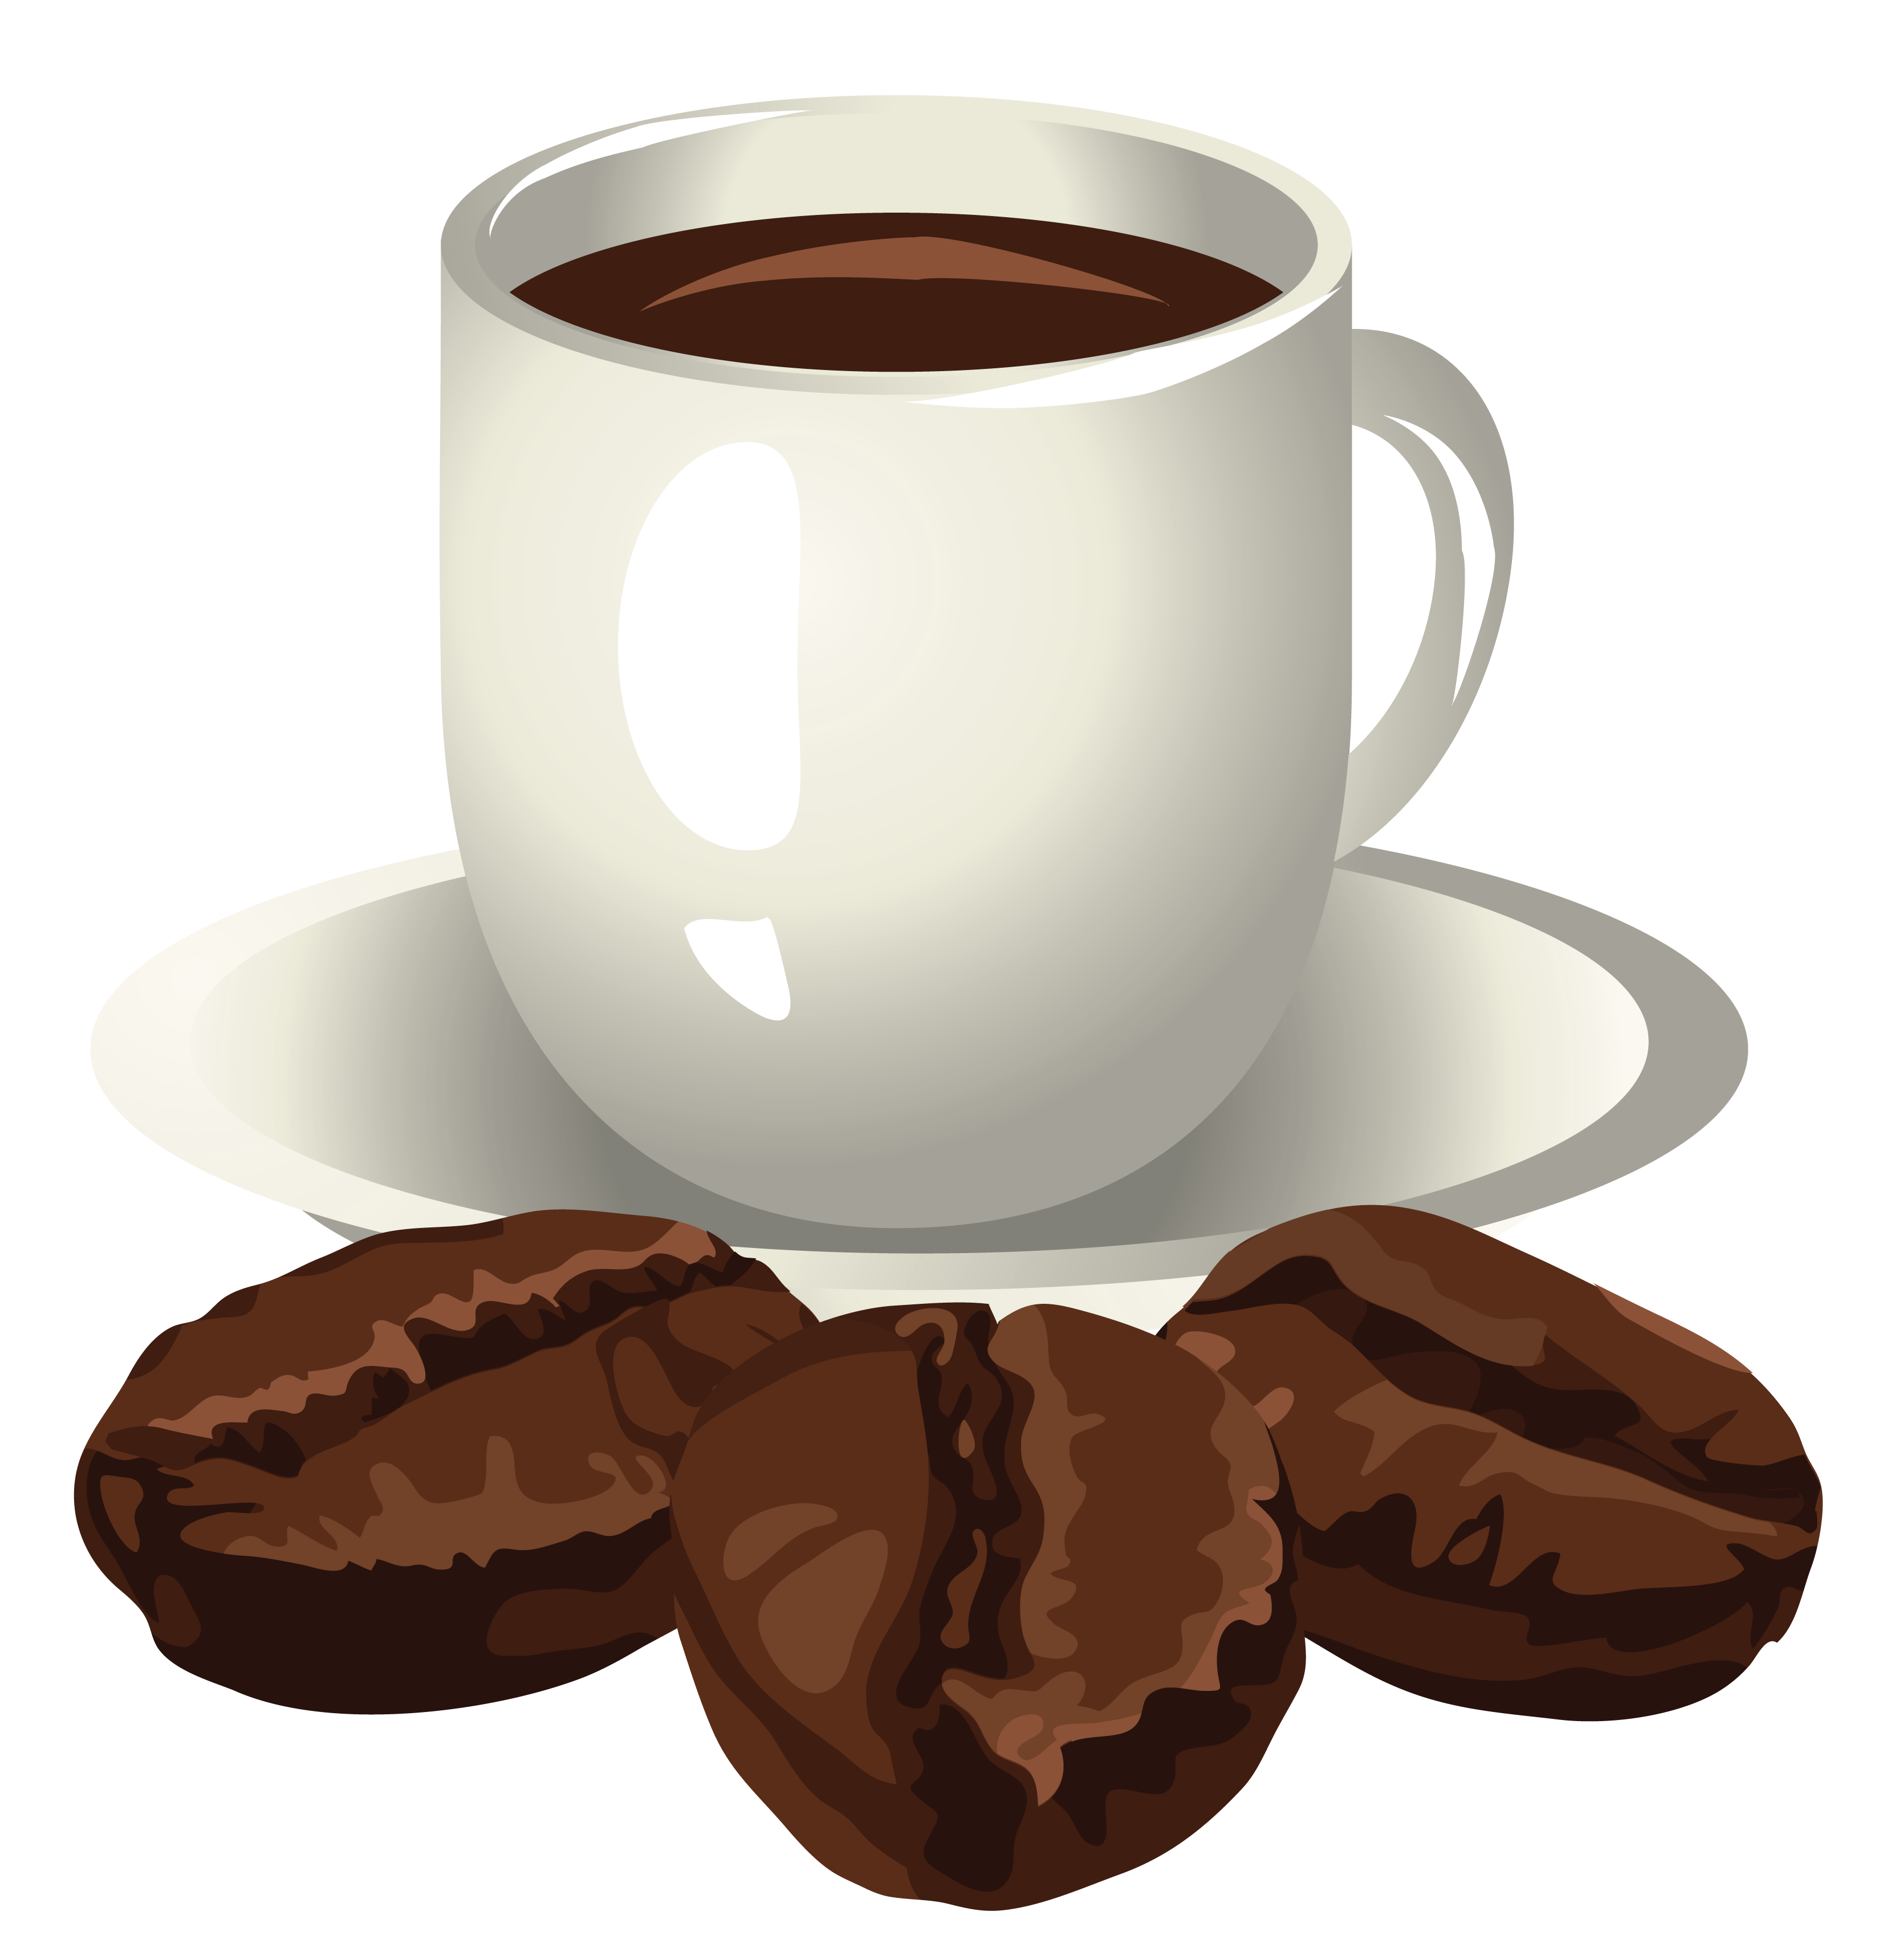 Coffee cup clipart png. Gallery yopriceville high quality